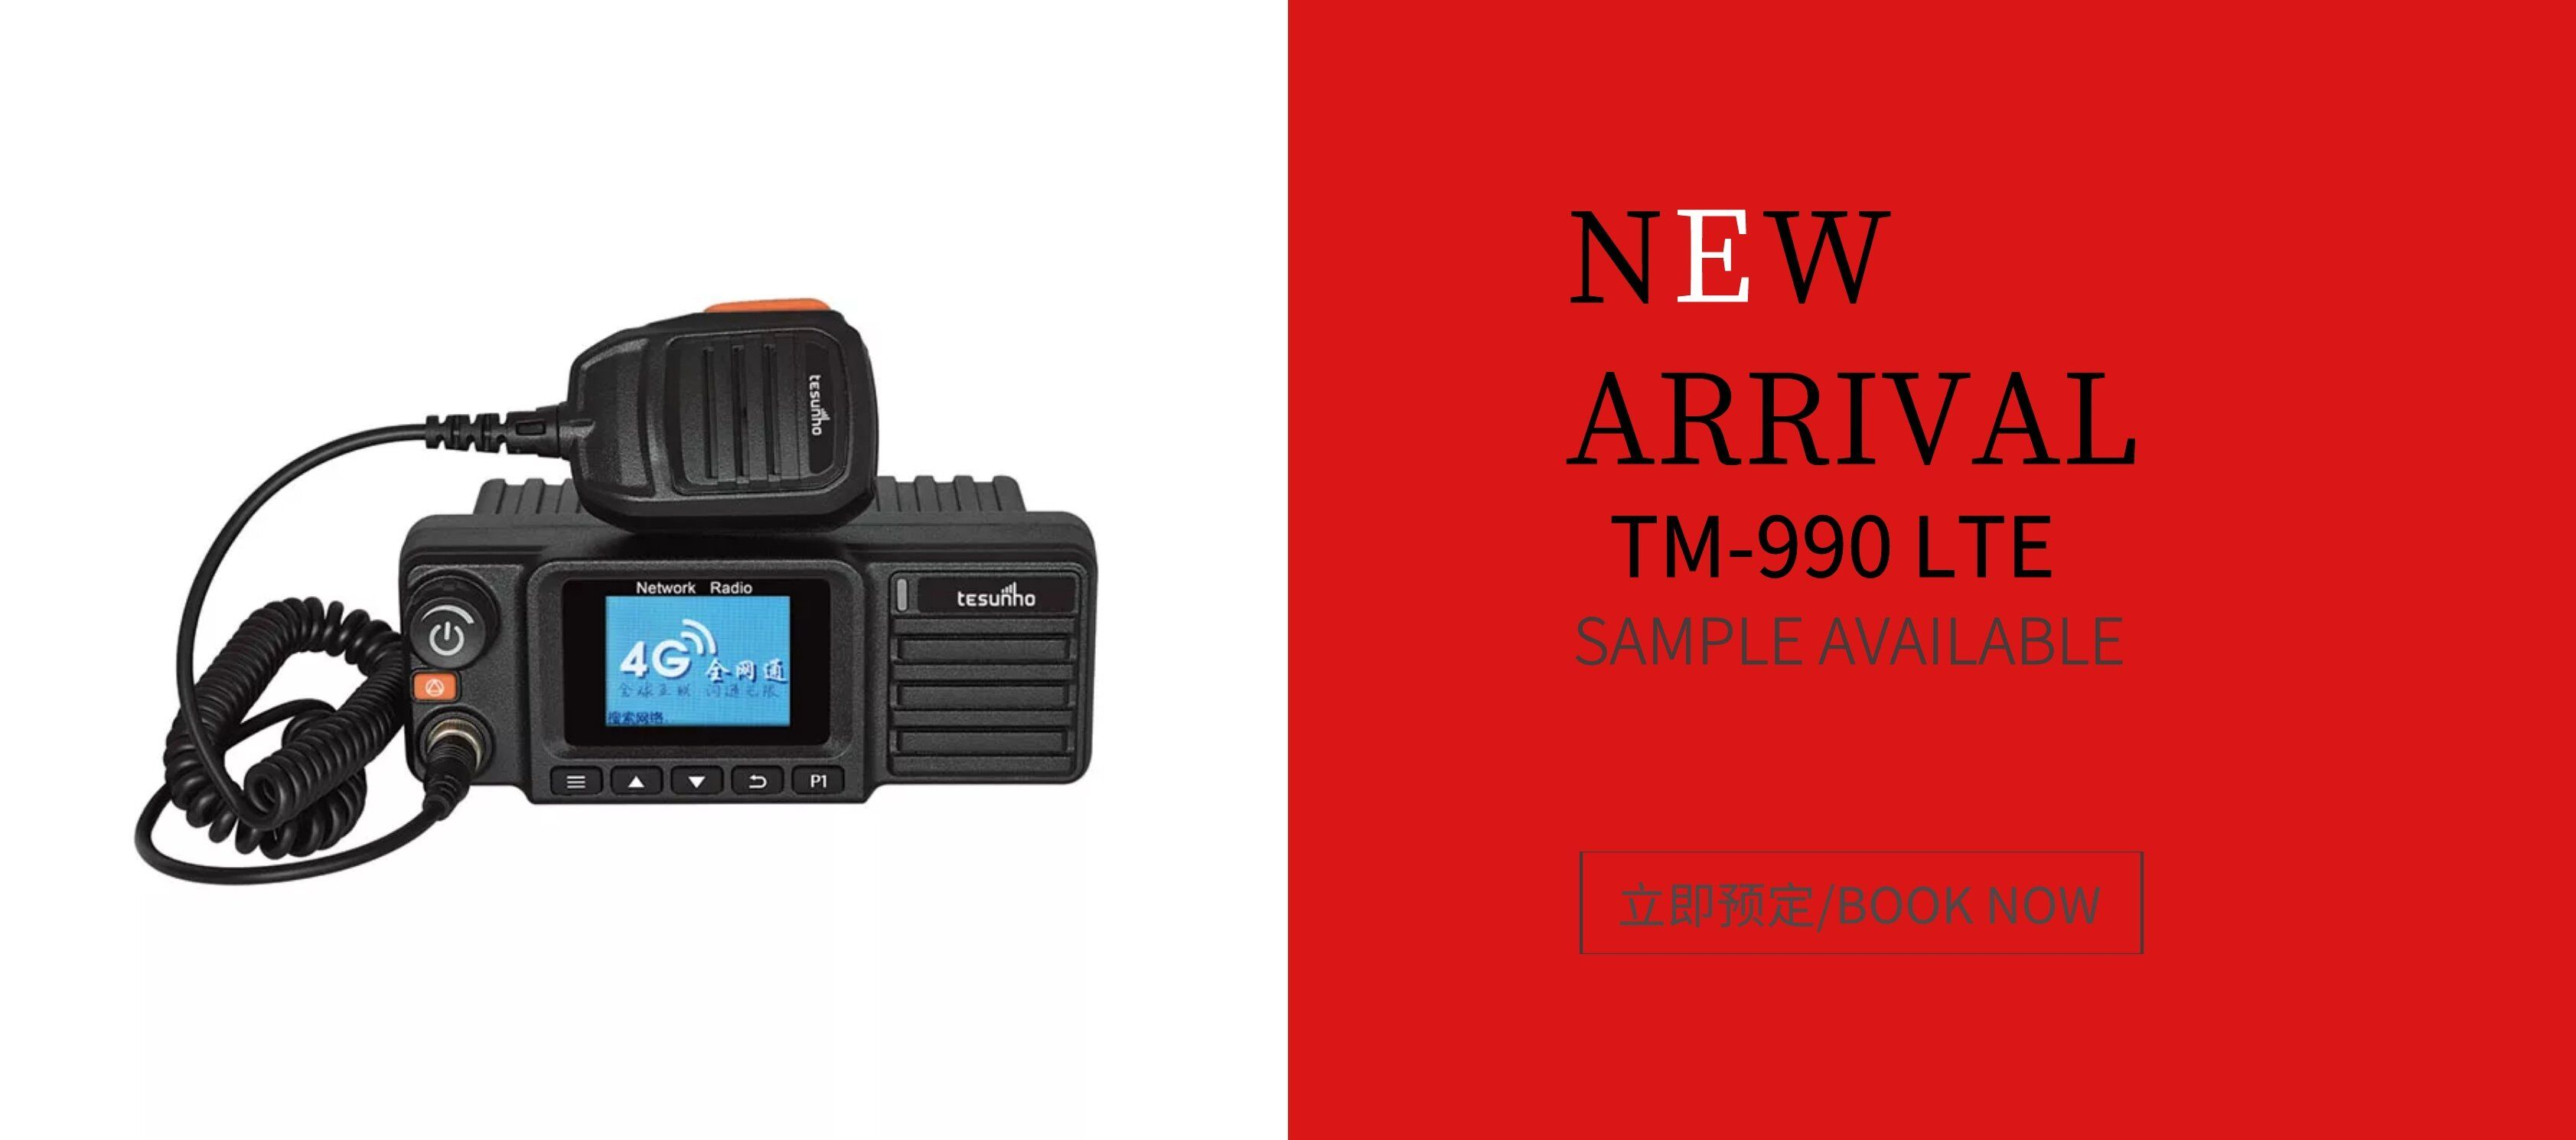 TESUNHO TH-388 200 Mile 2G 3G 4G Walkie Talkie รุ่น 3G 4G ตัวเลือก